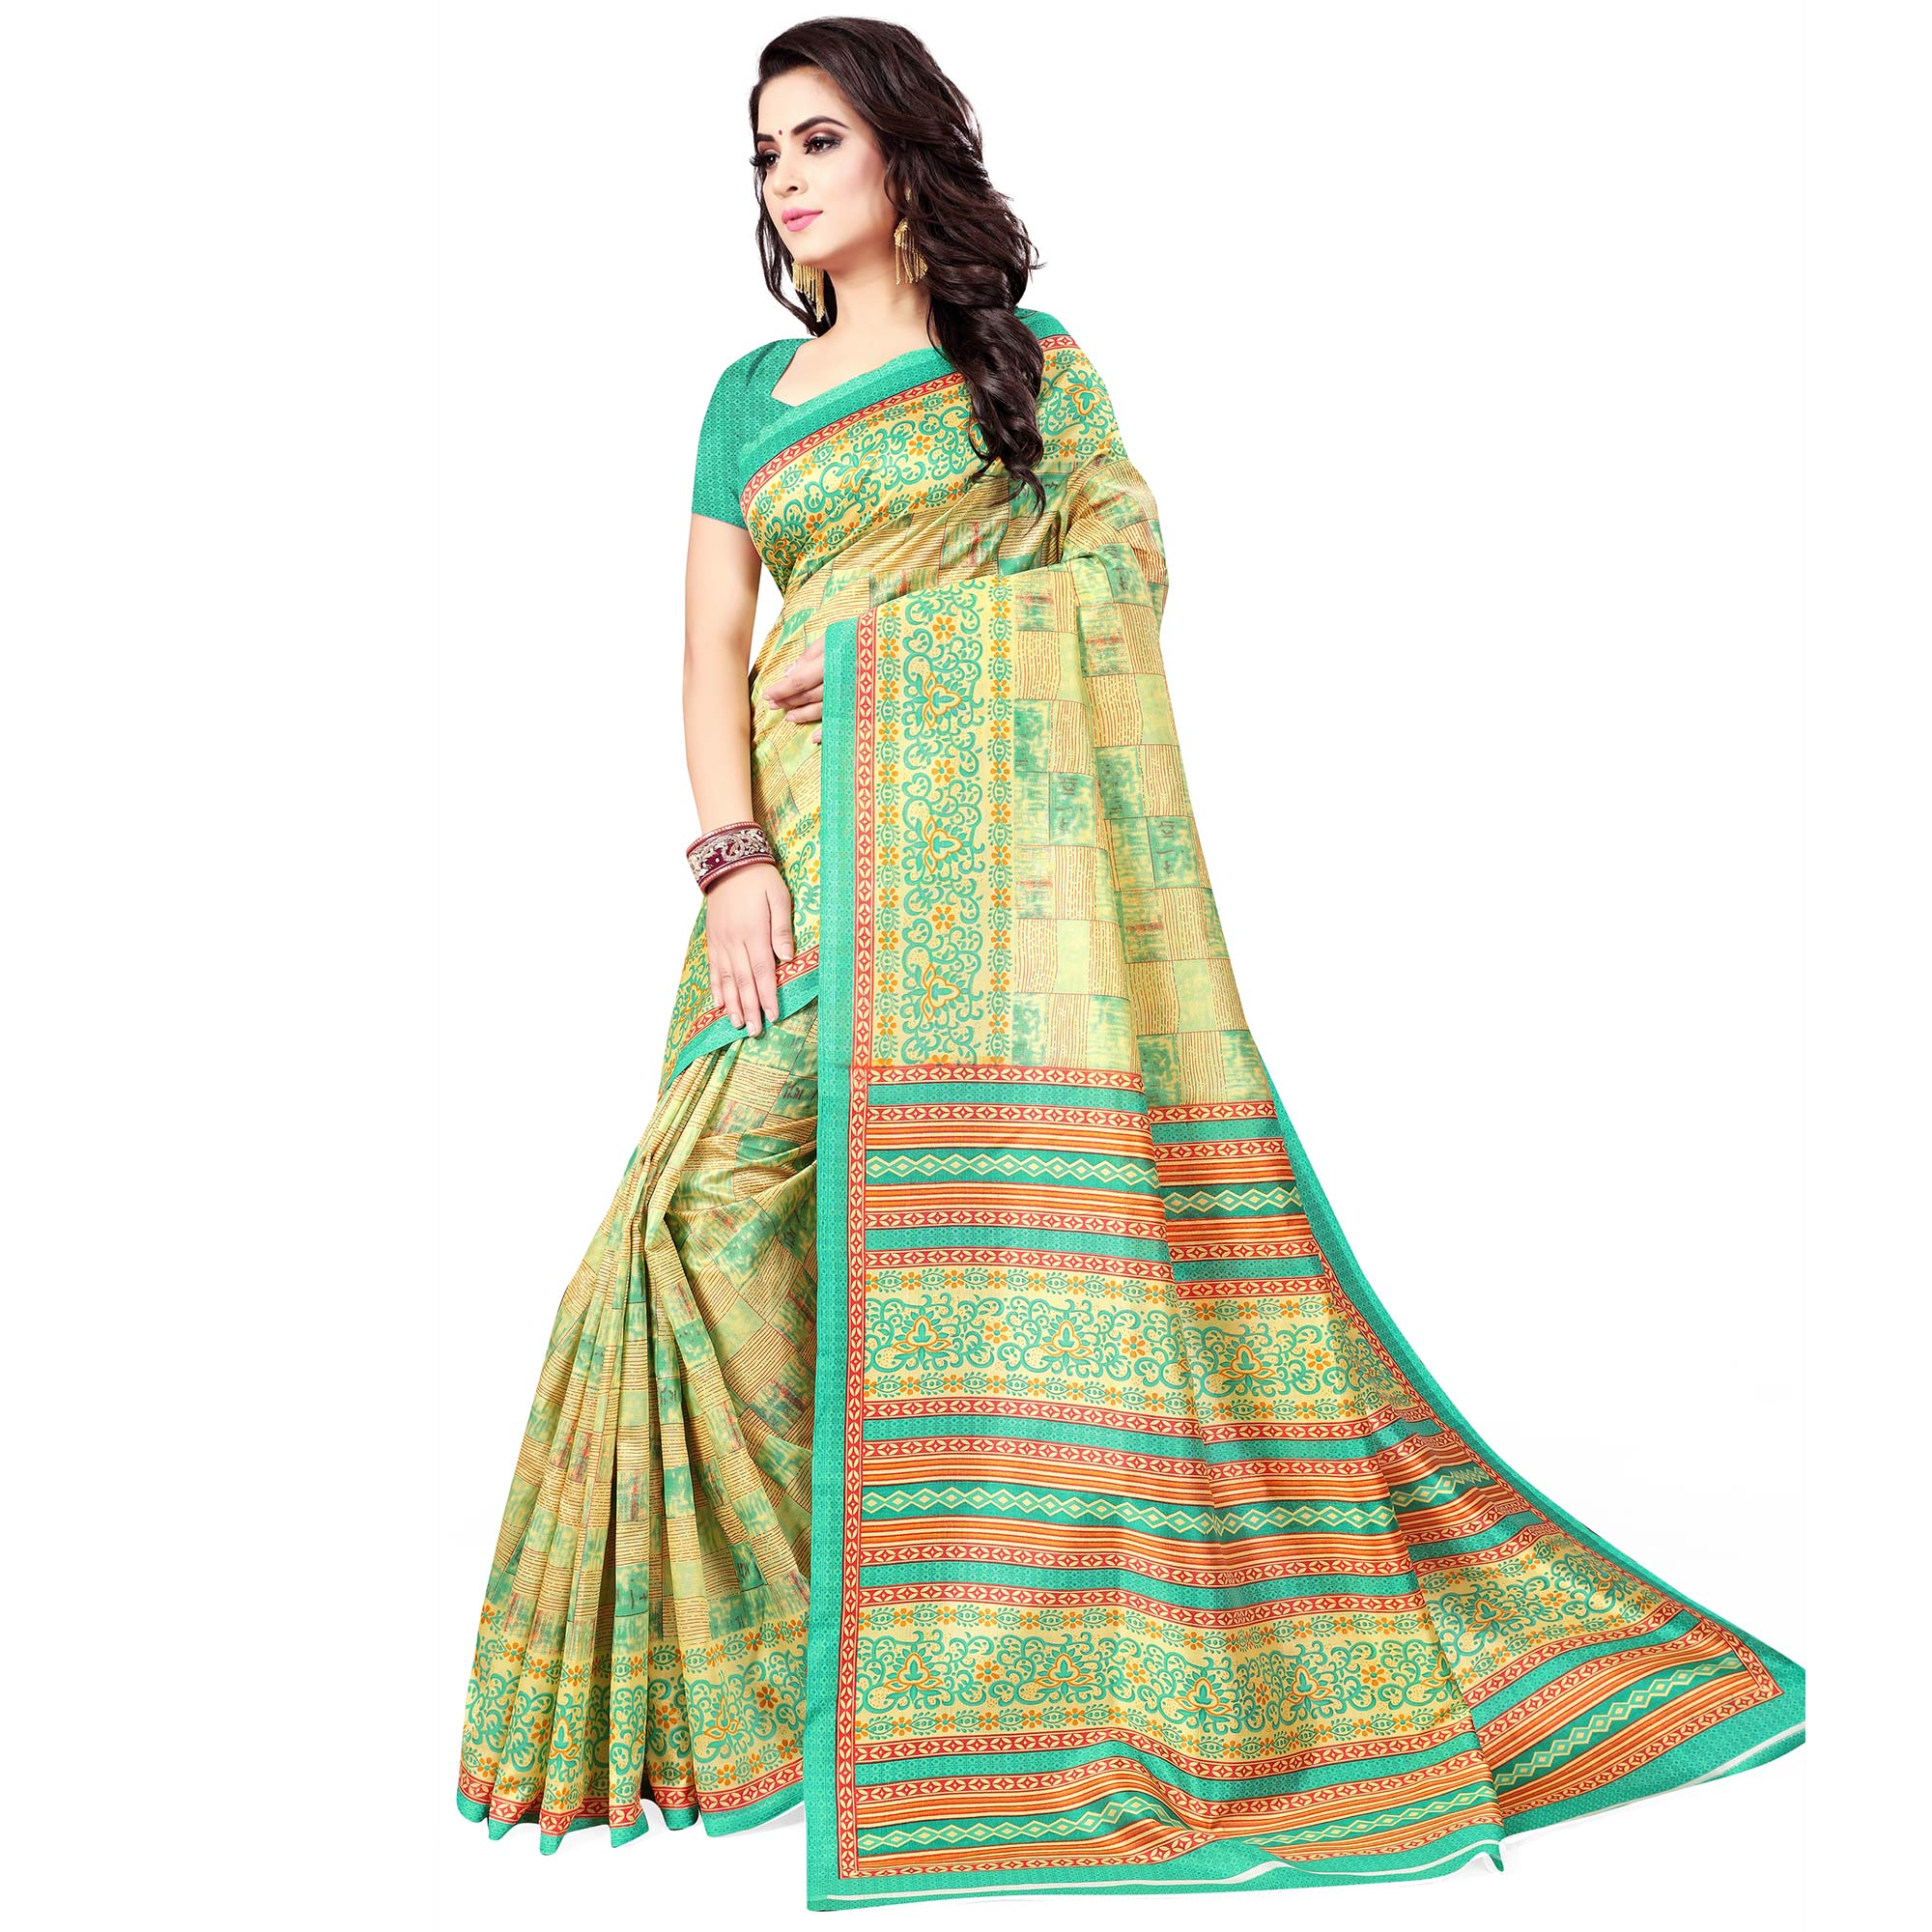 Radiant Light Green Colored Casual Wear Printed Bhagalpuri Silk Saree